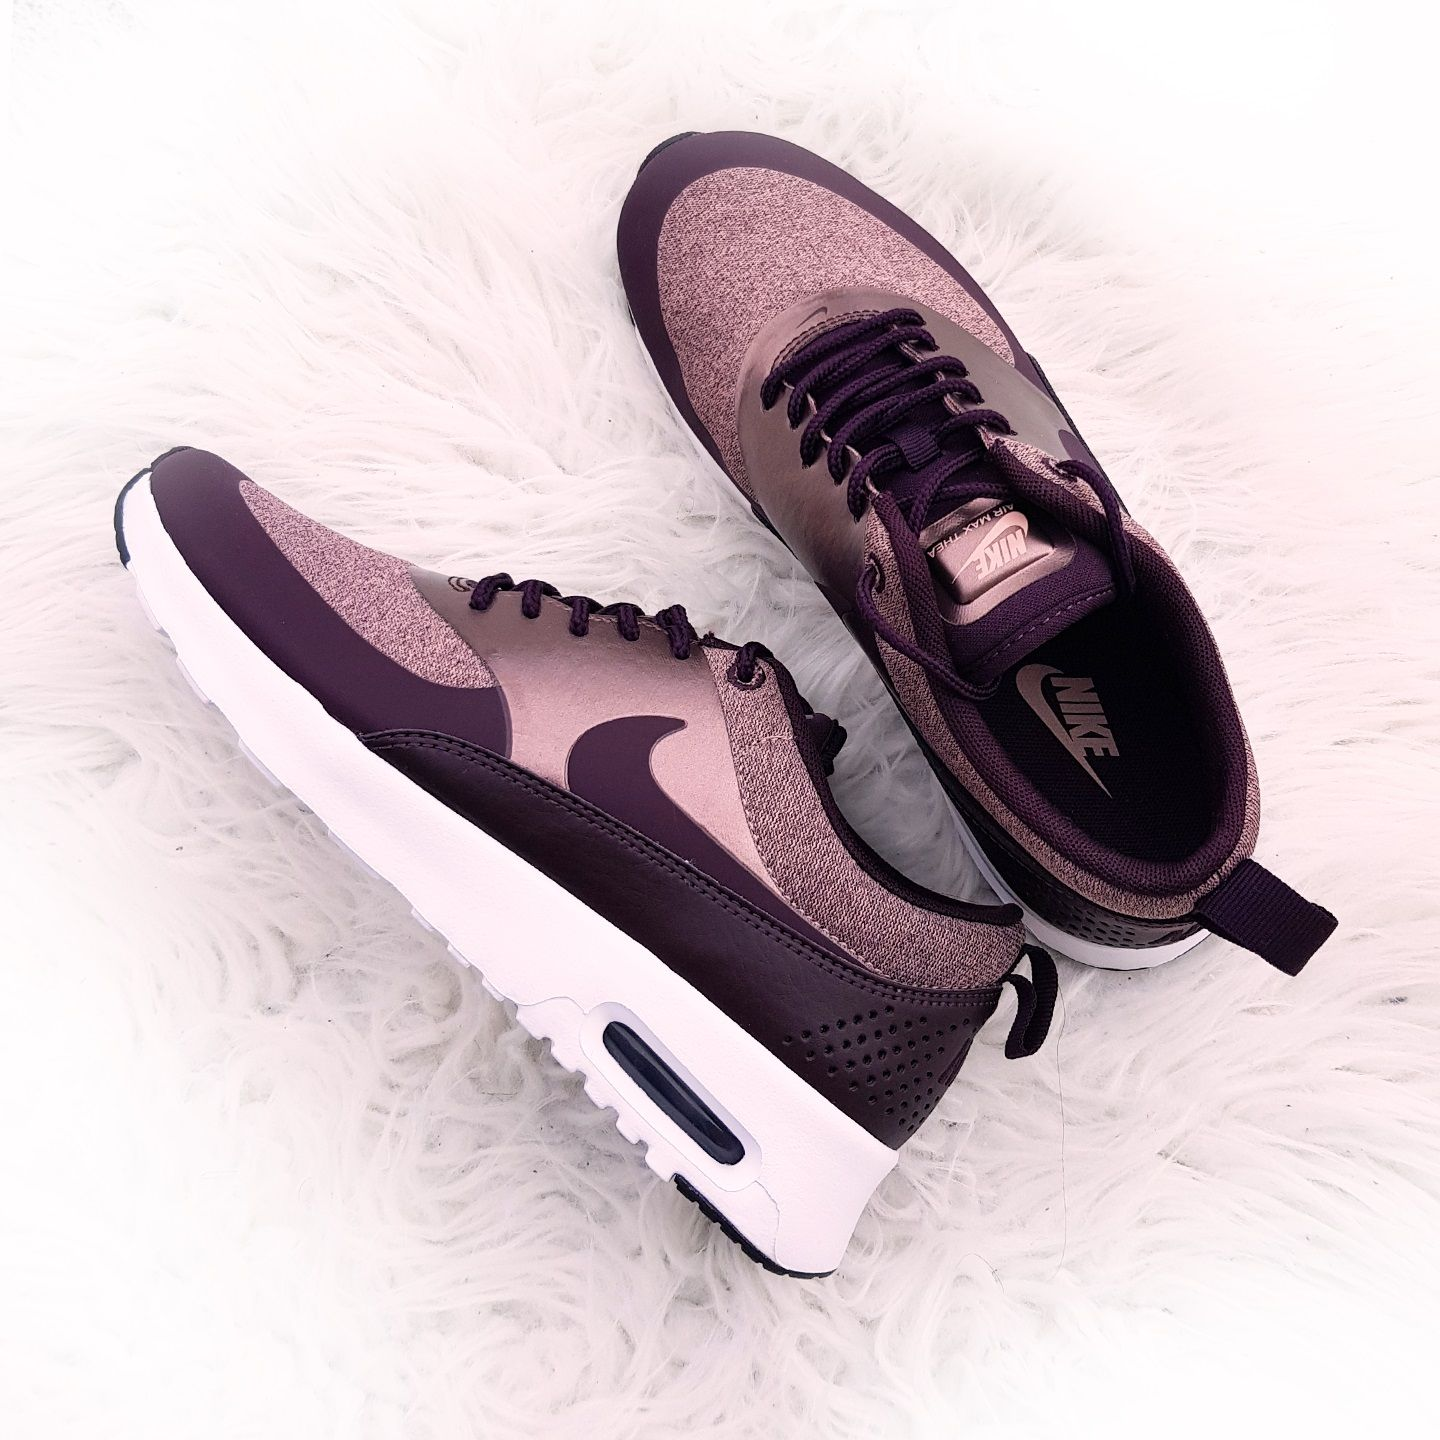 pick up 51fa3 6966c Nike Air Max Thea Knit - Port Wine Particle Pink Schwarz Metallic Mahogany